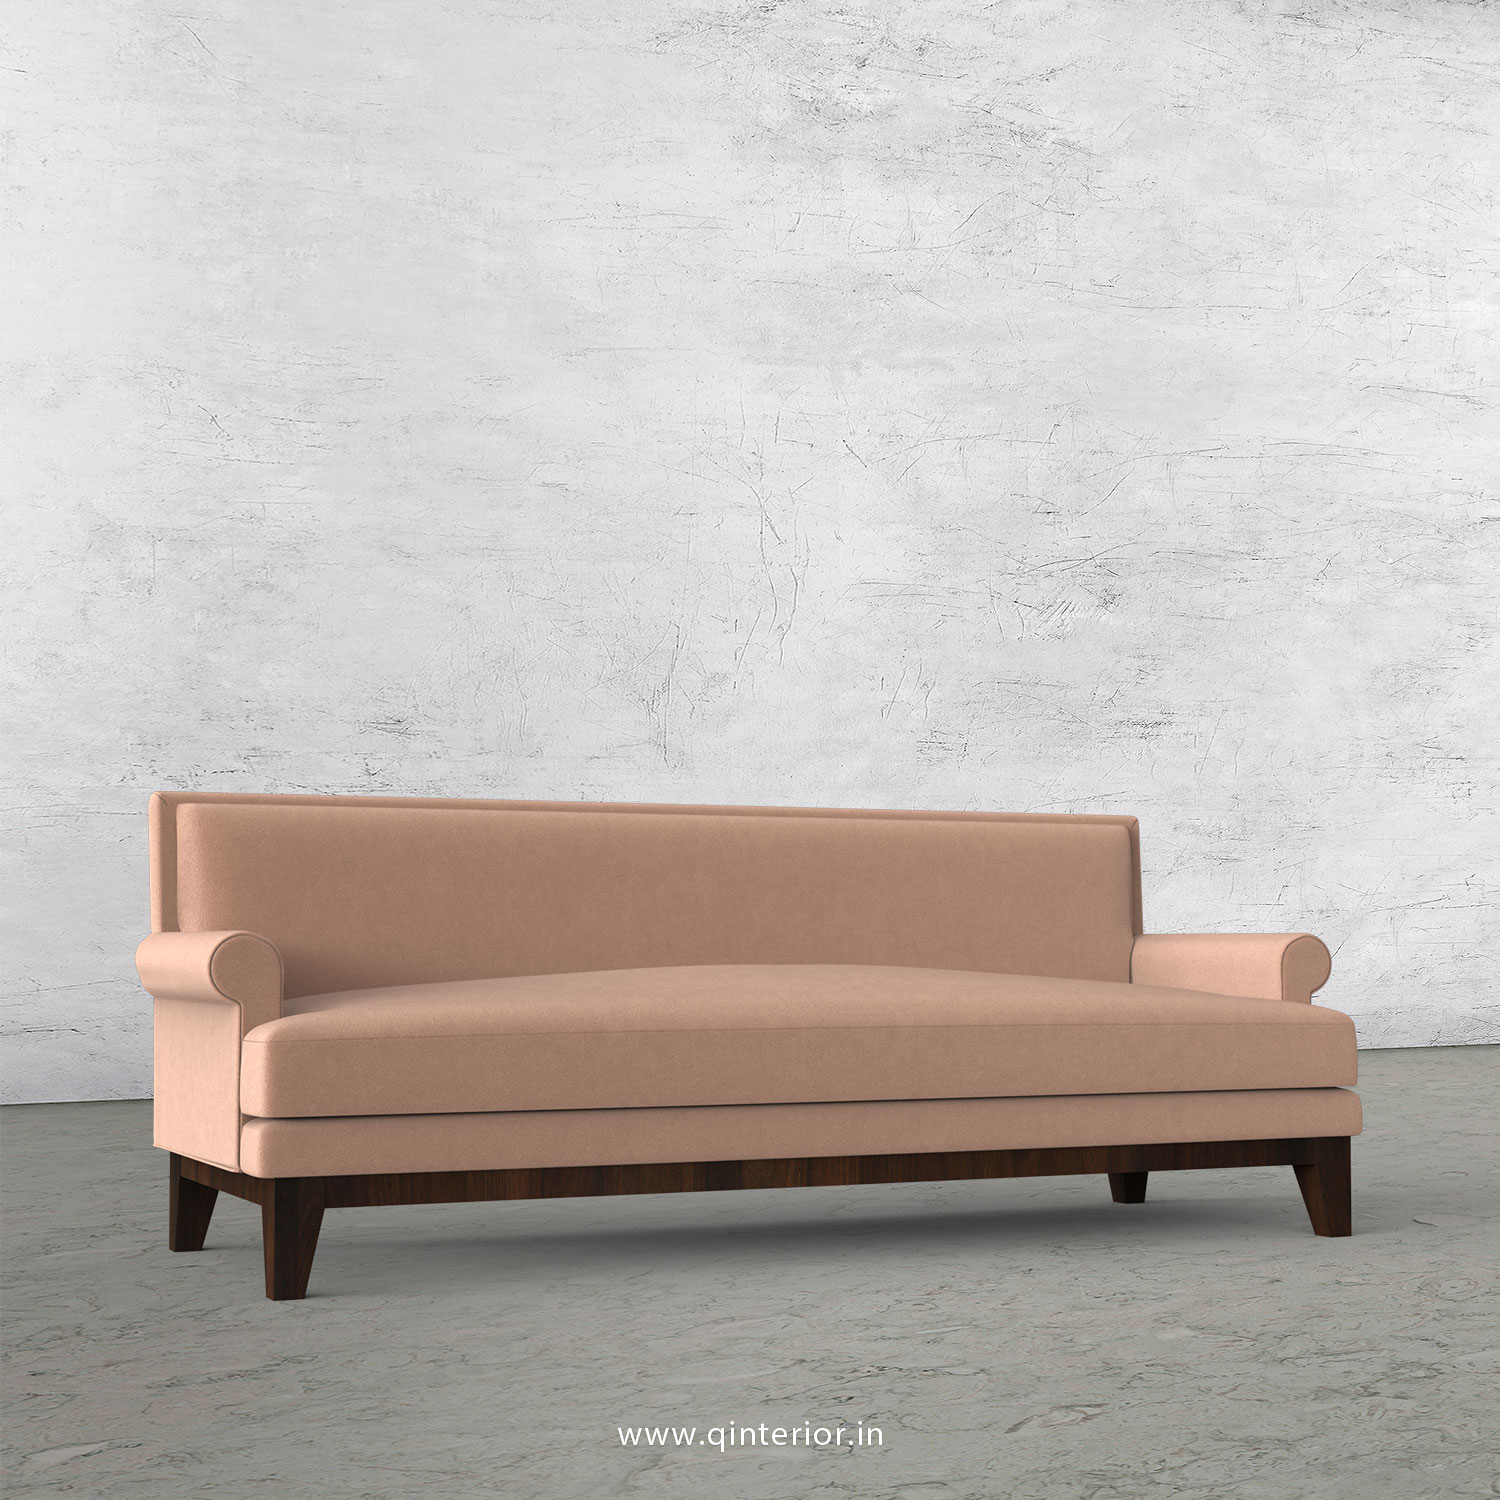 Aviana 3 Seater Sofa in Velvet Fabric - SFA001 VL16